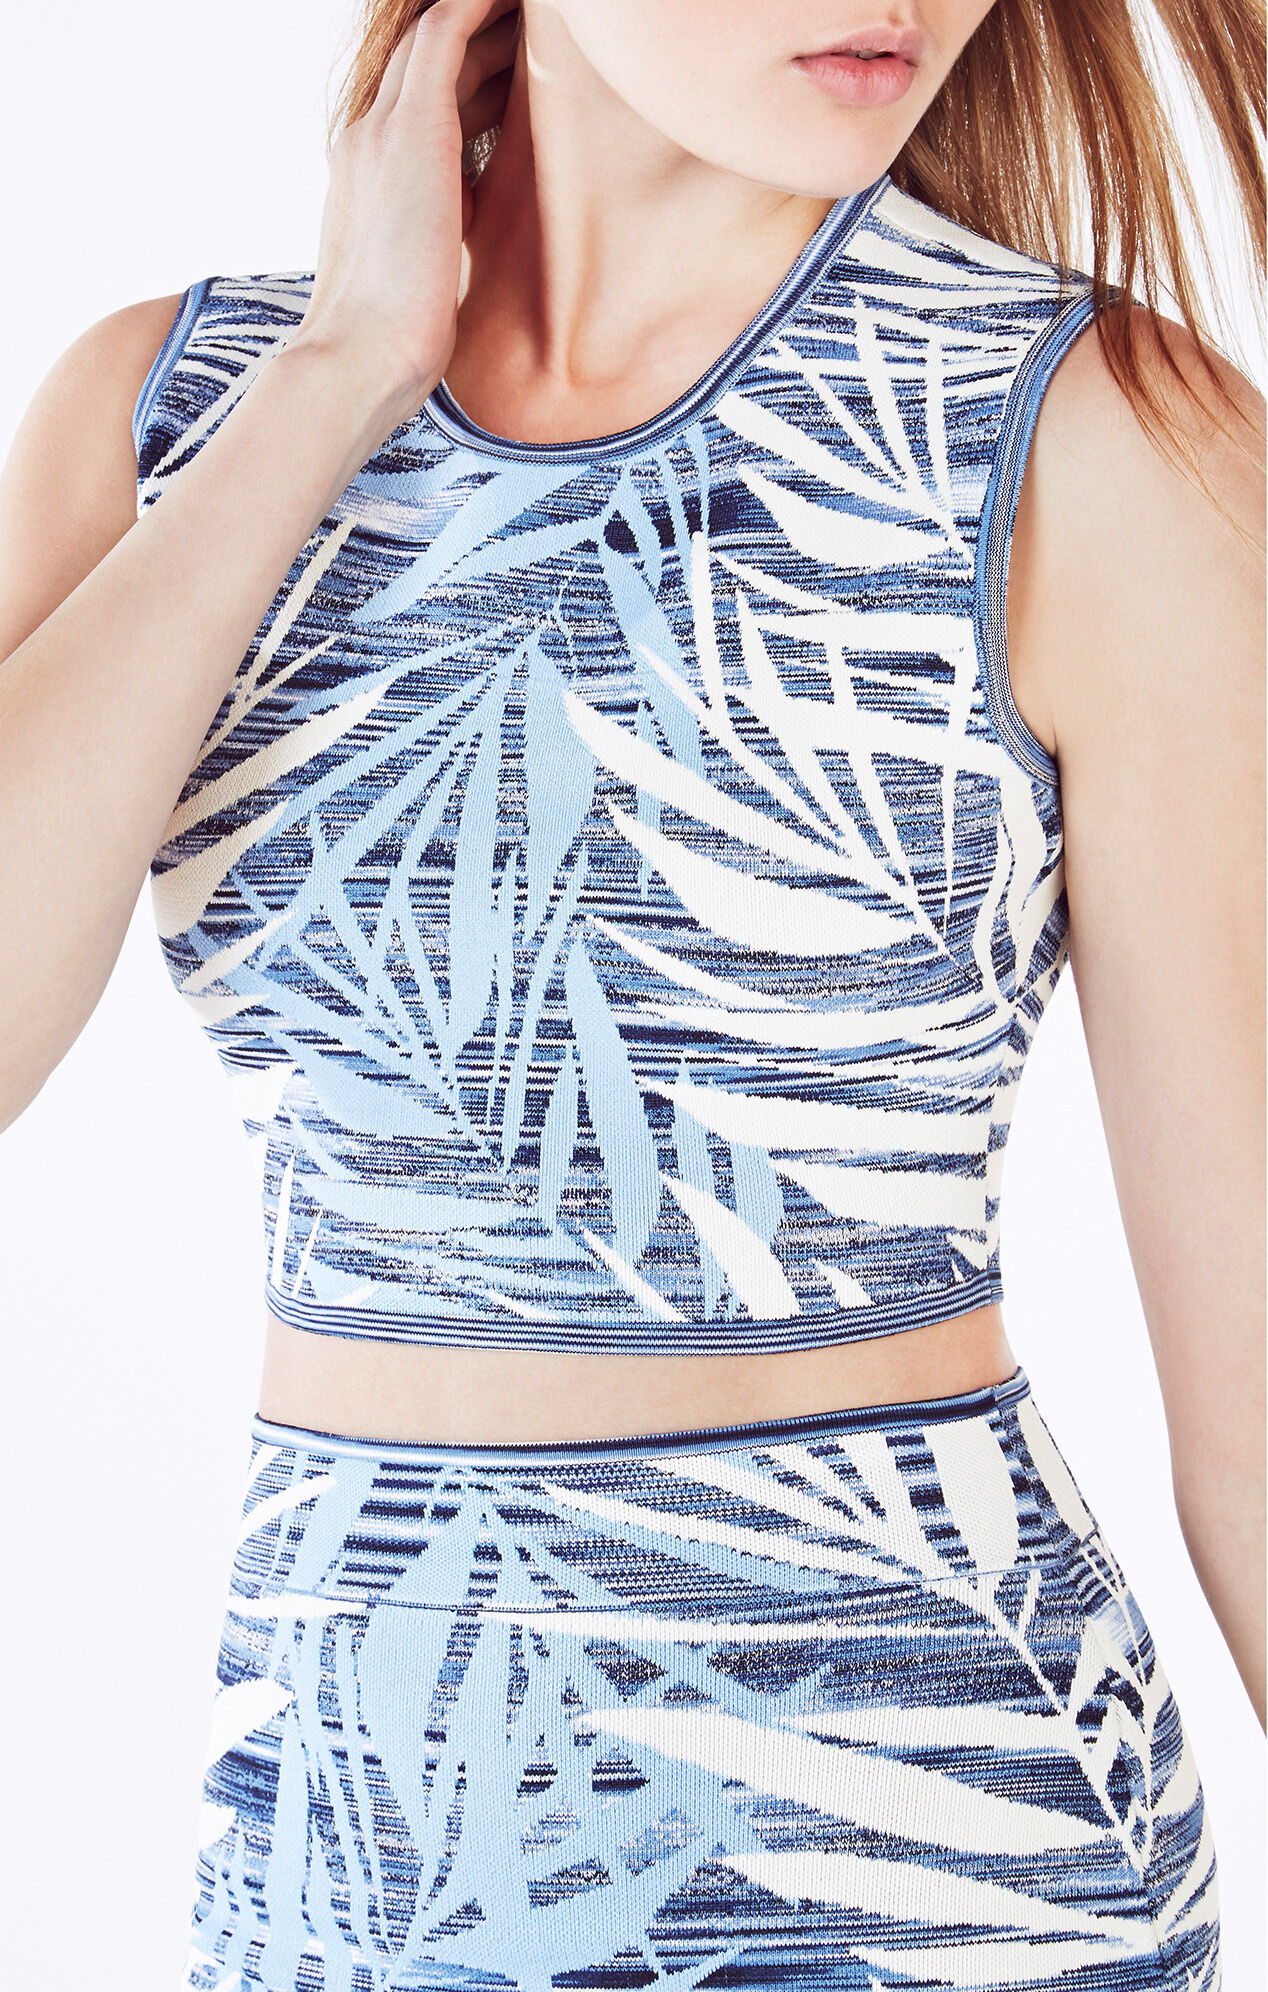 Jaelynnn Palms Print Knit Jacquard Crop Top